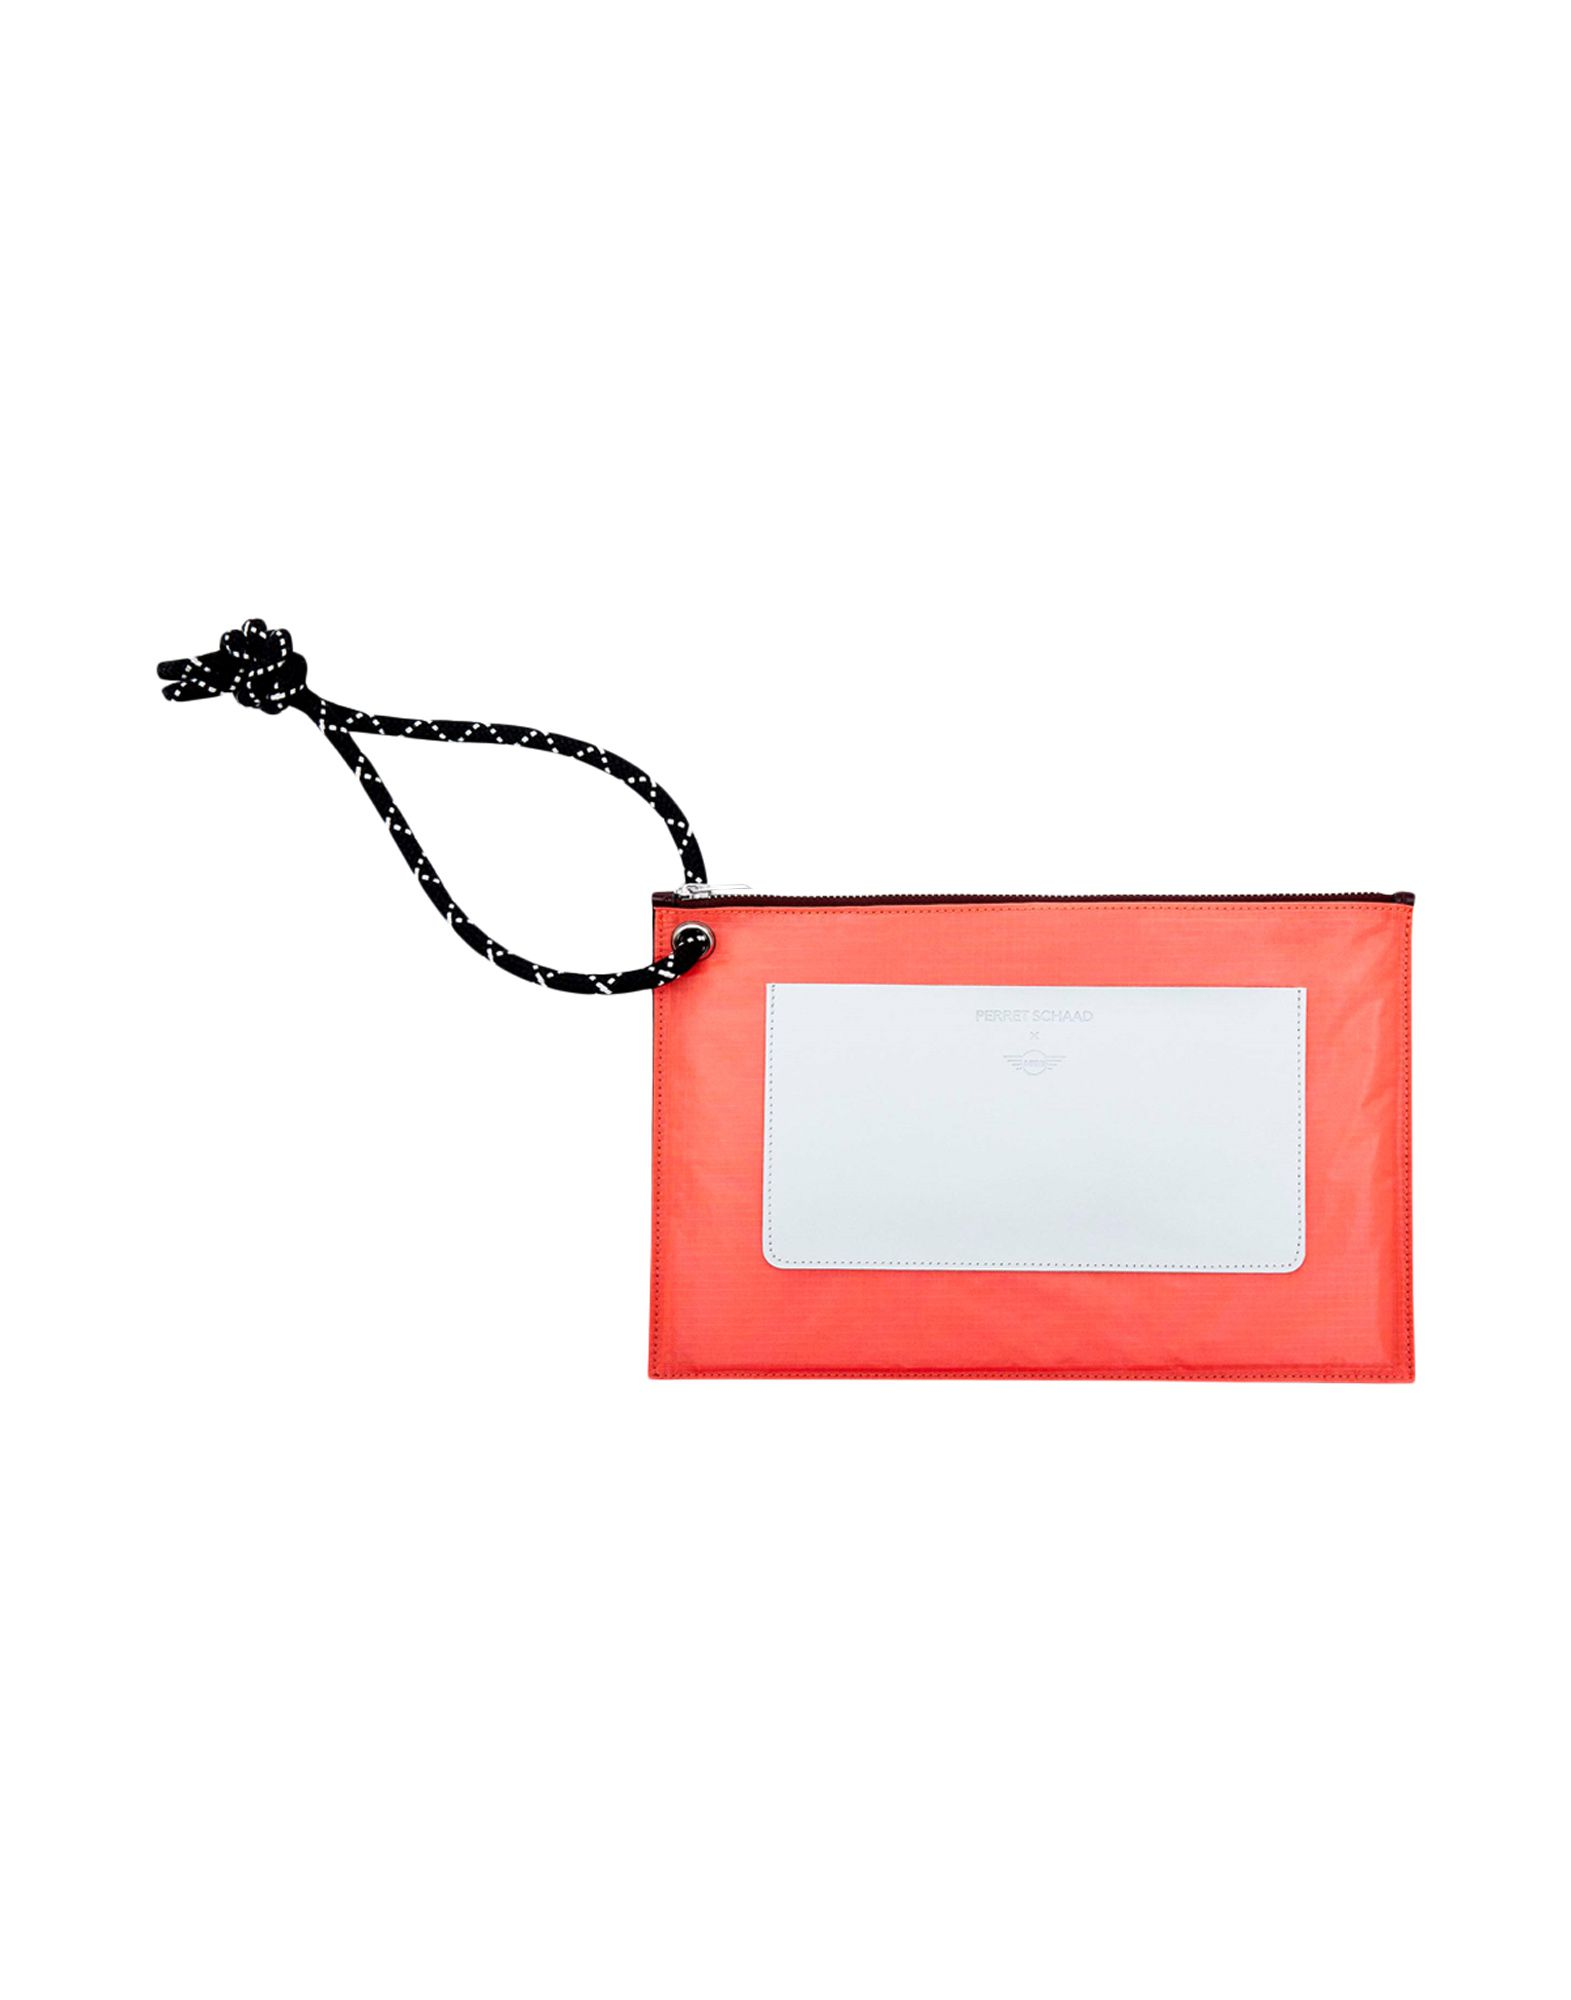 MINI Handbag in Coral